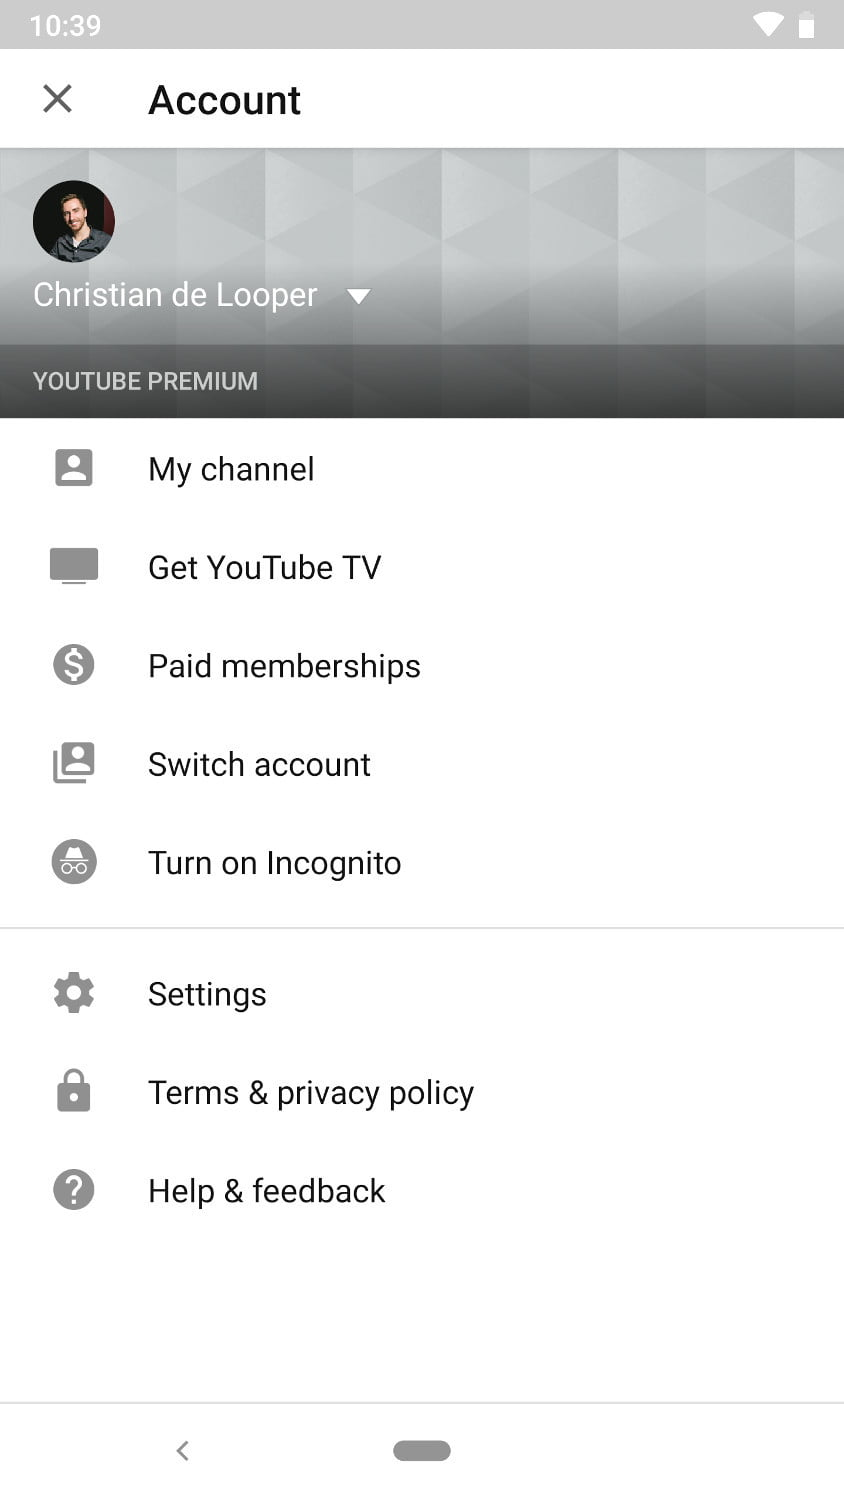 How To Use YouTube's Incognito Mode In The Android App